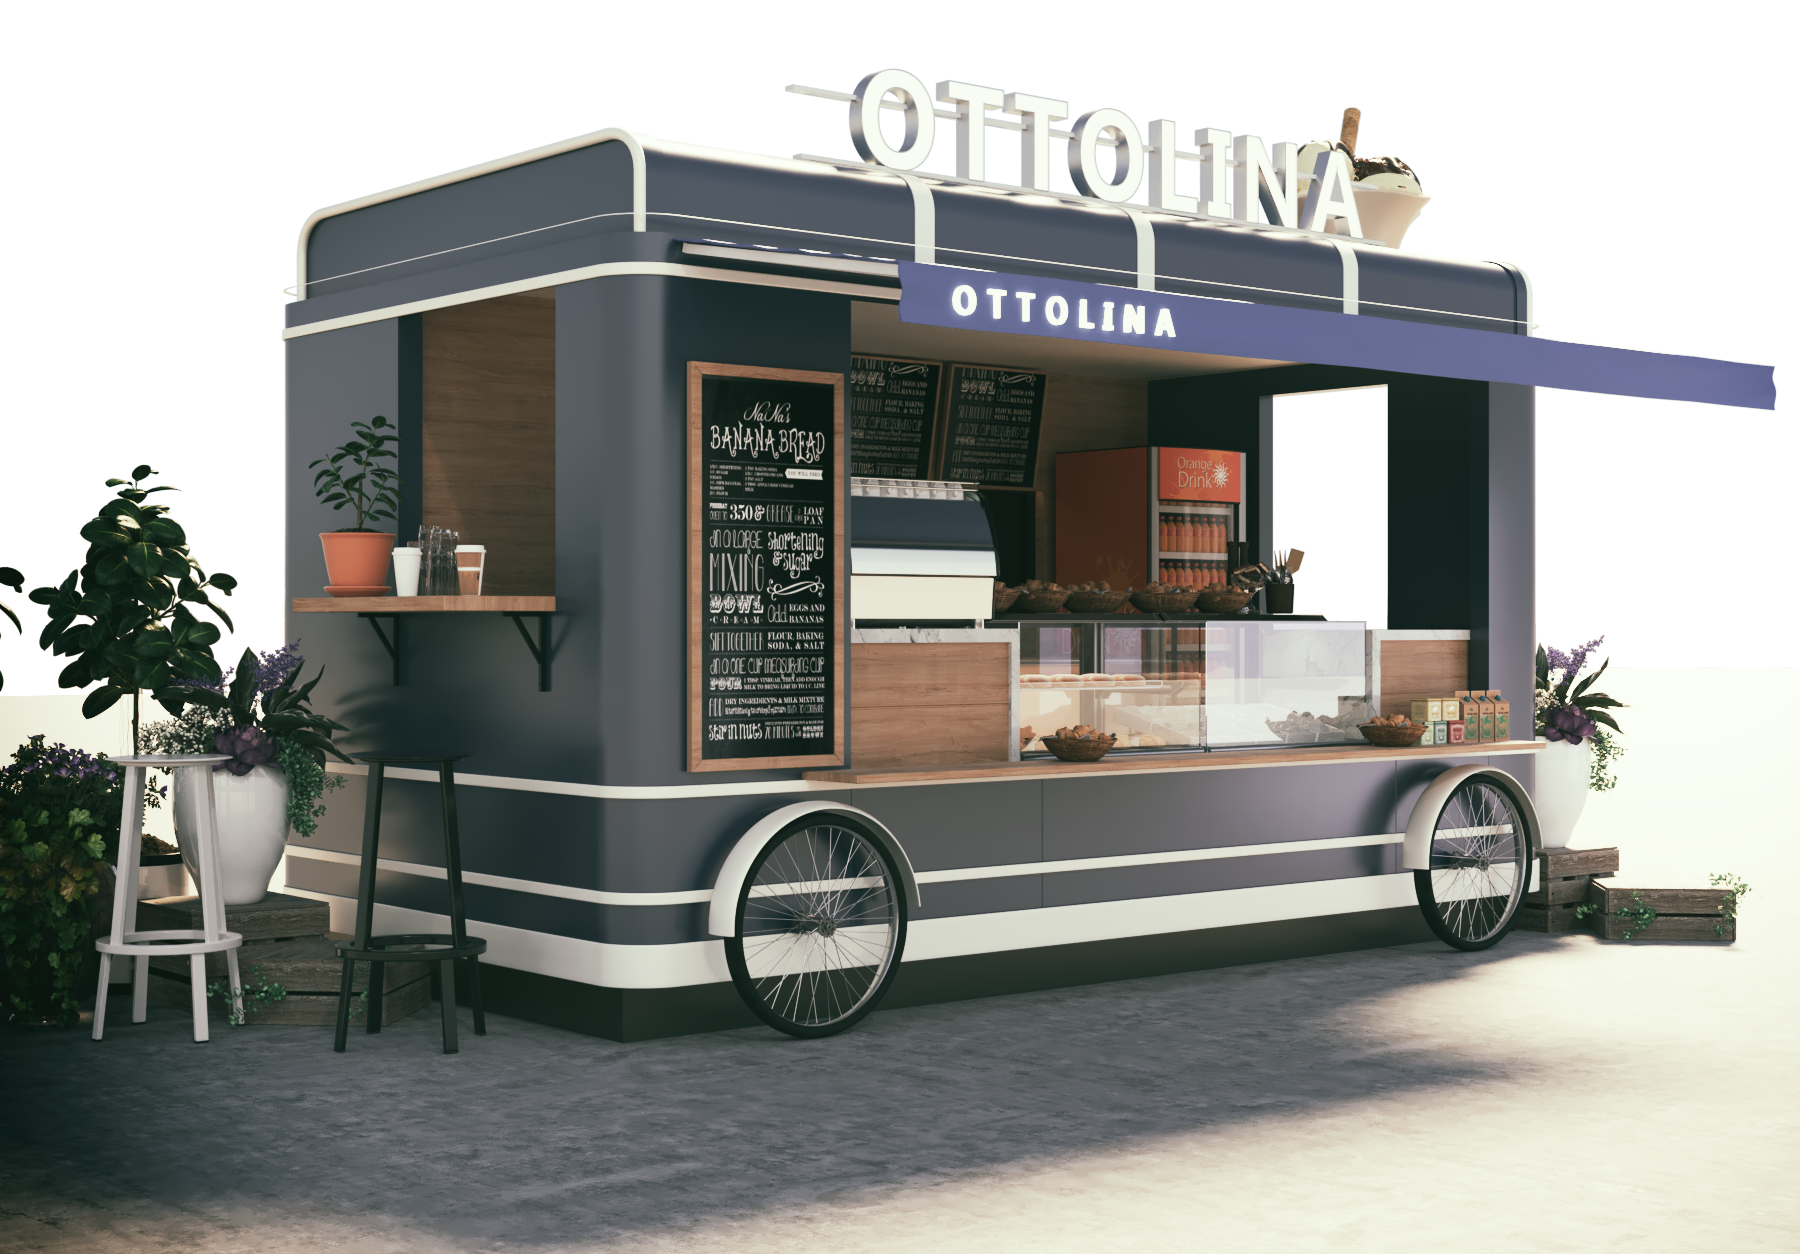 Food truck design for ottolina cafe shop it looks yami for Design your food truck